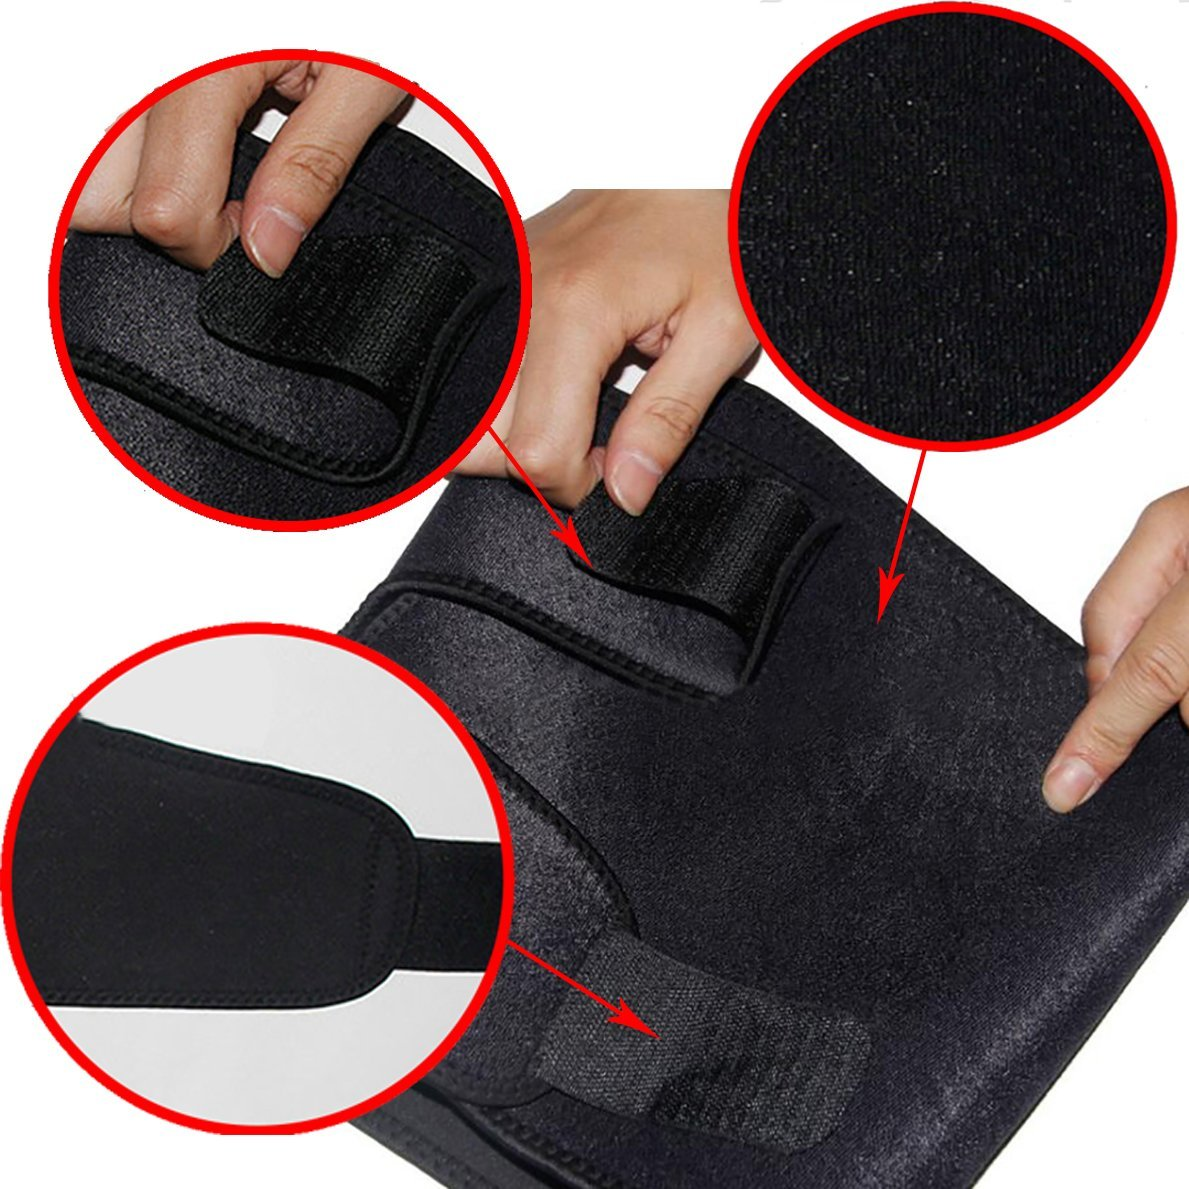 Enshey Thigh Compression Sleeve Support for Pulled Hamstring Strain Injury Tendonitis Rehab and Recovery Thigh Wrap Black Thigh Brace Fits Men and Women